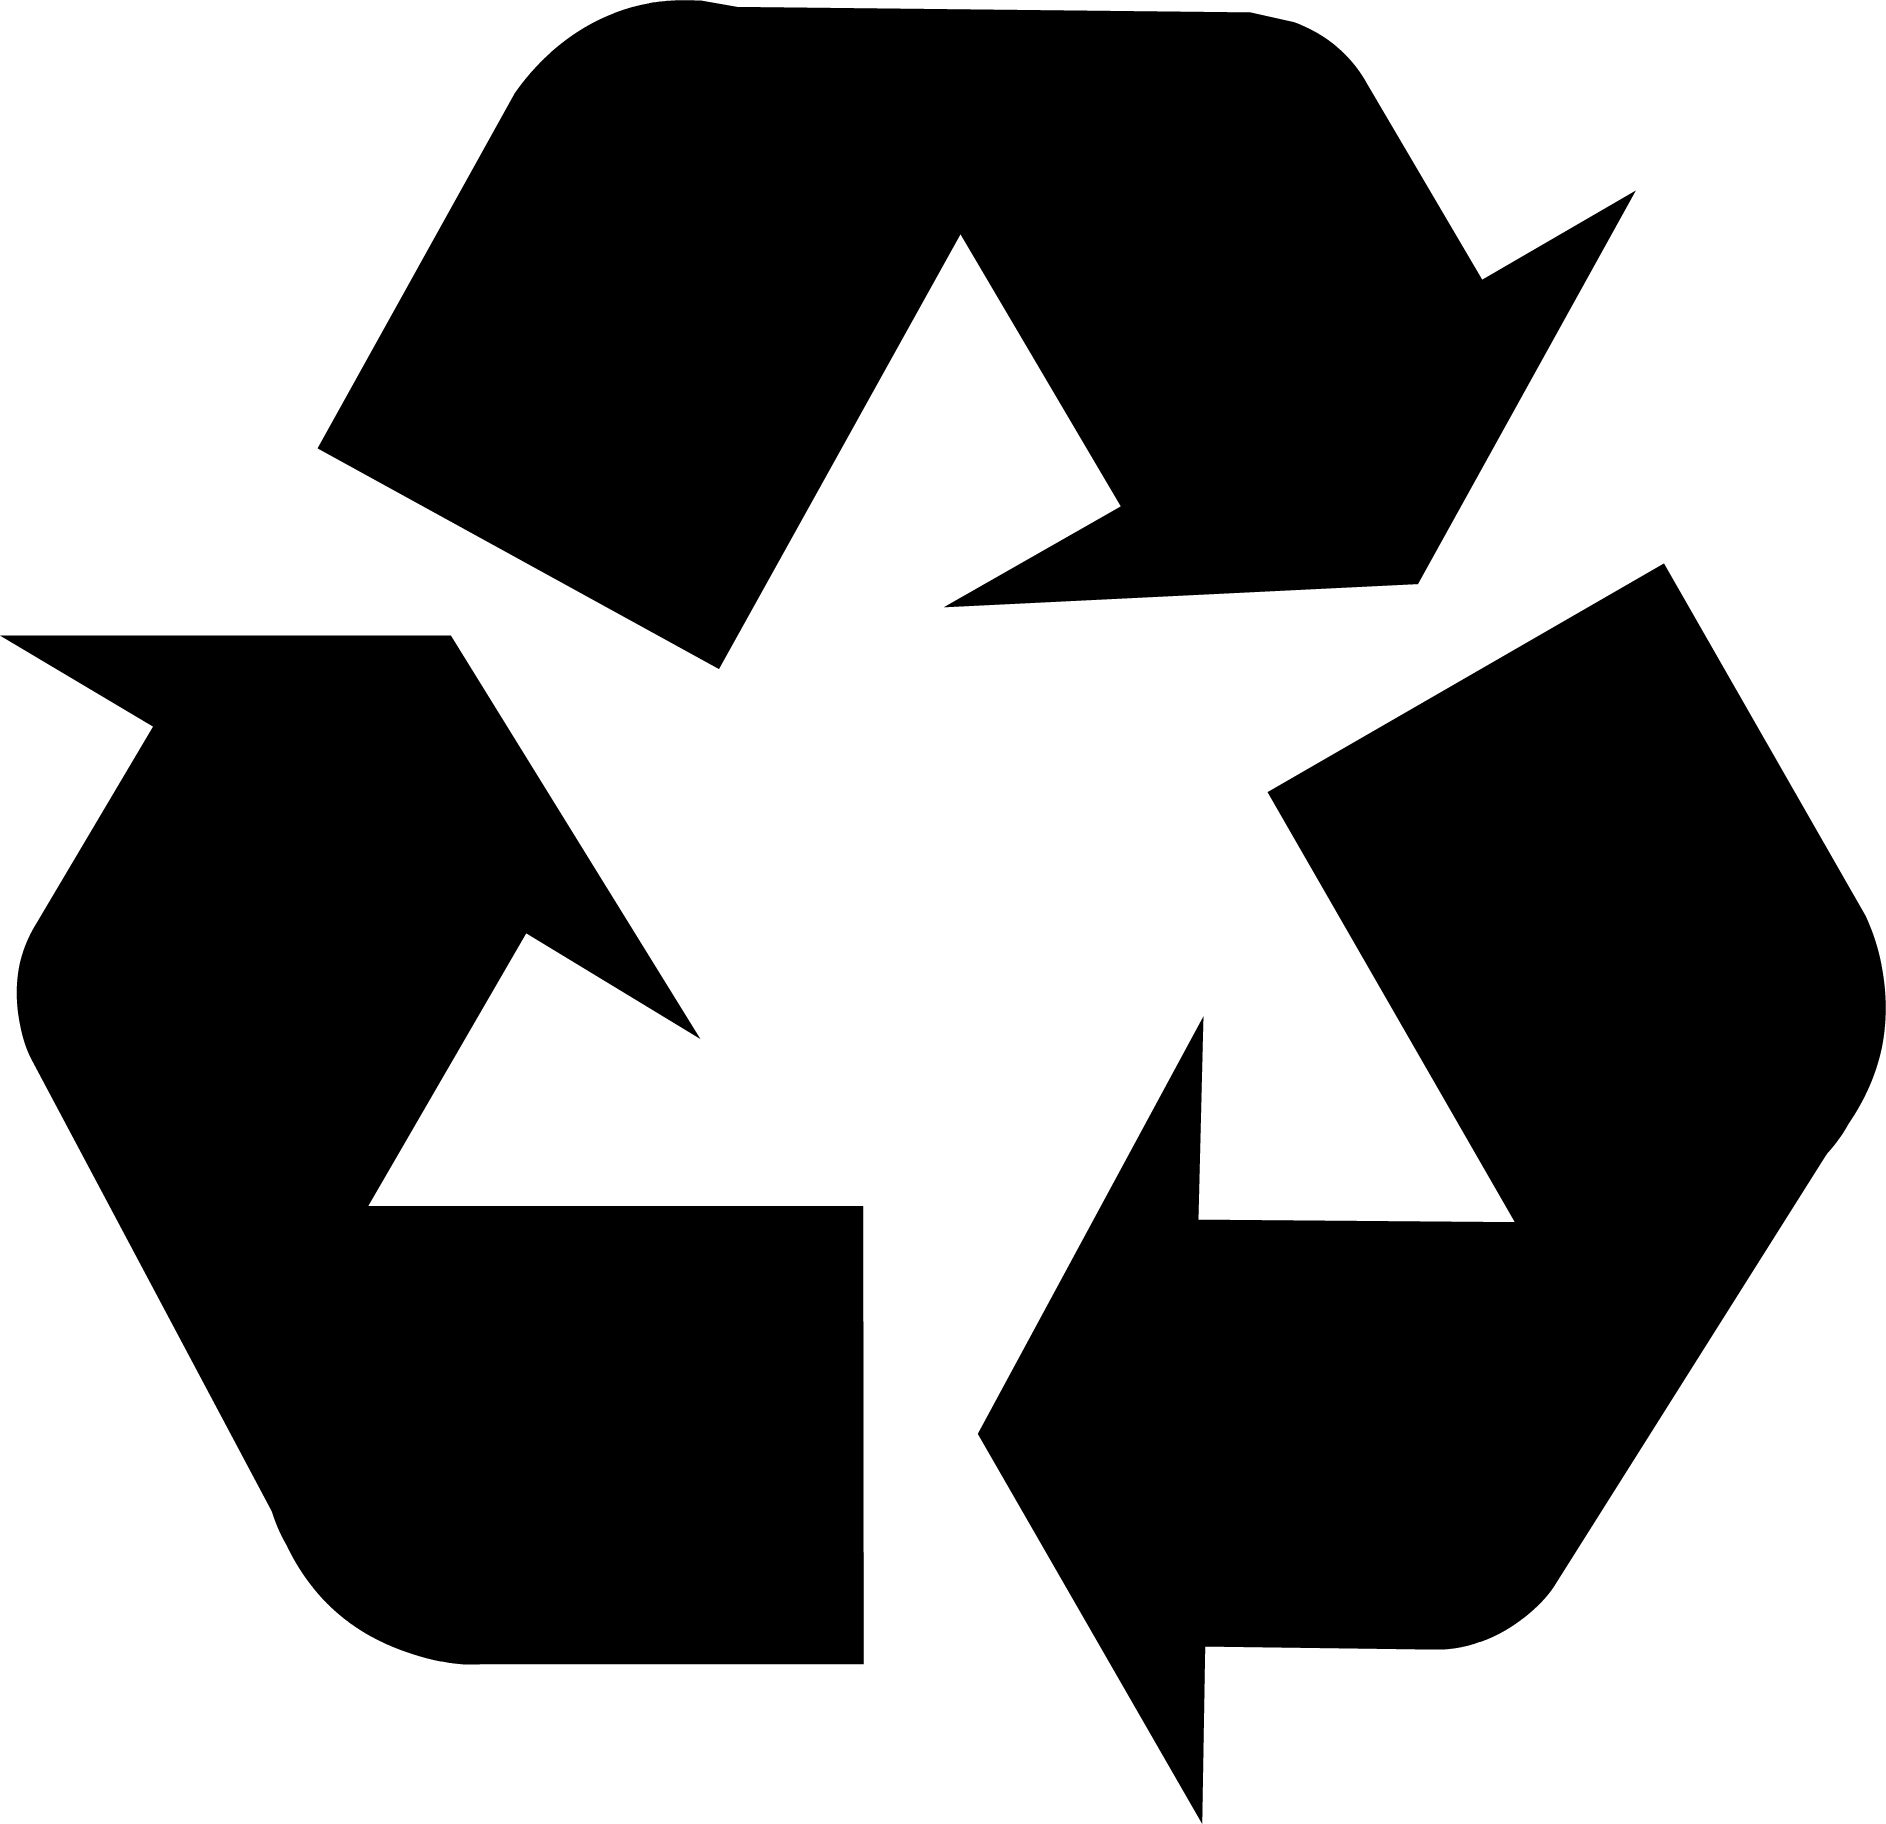 Image result for recycle symbol black